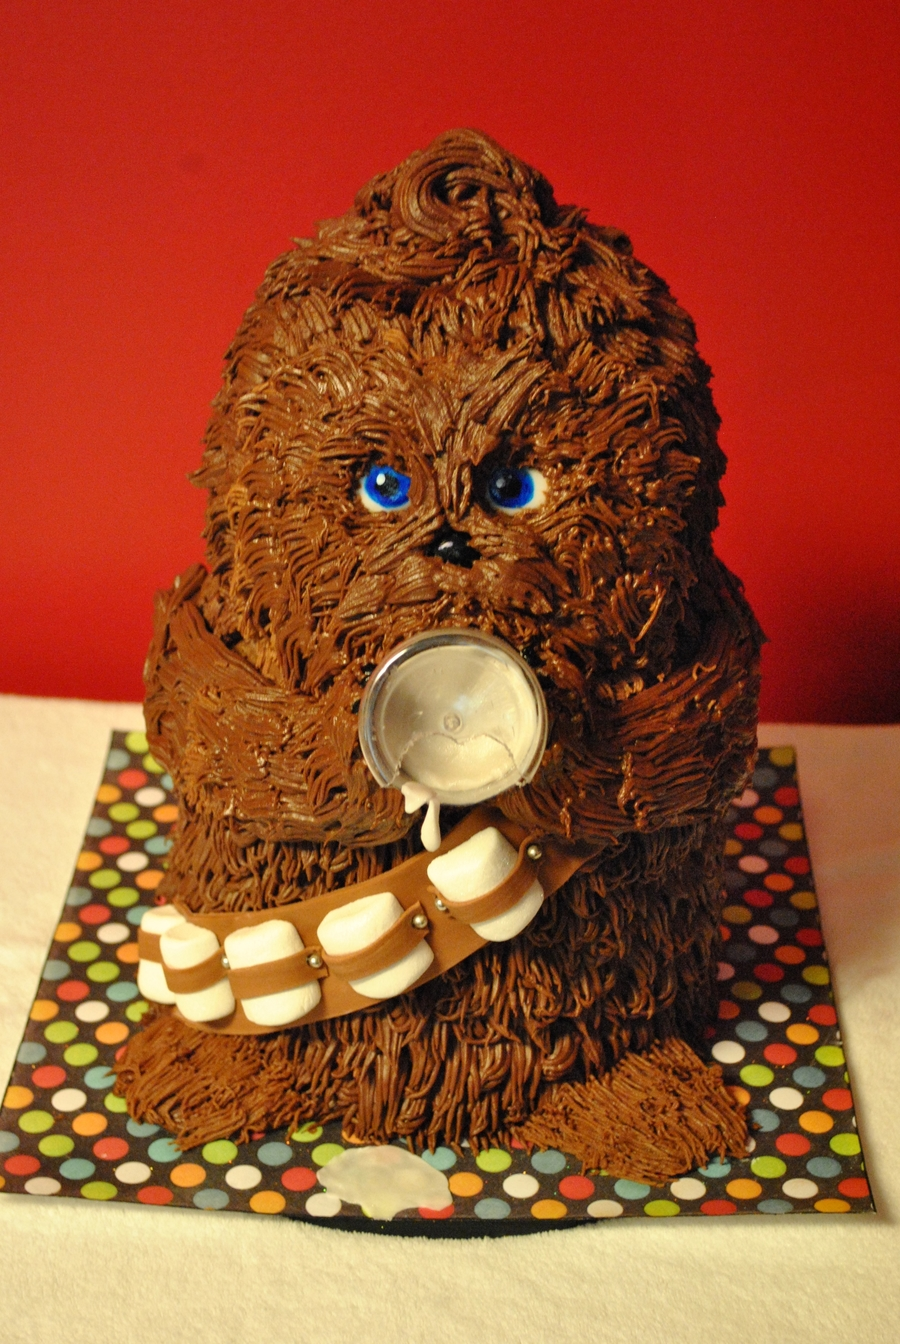 Baby Chewbacca on Cake Central